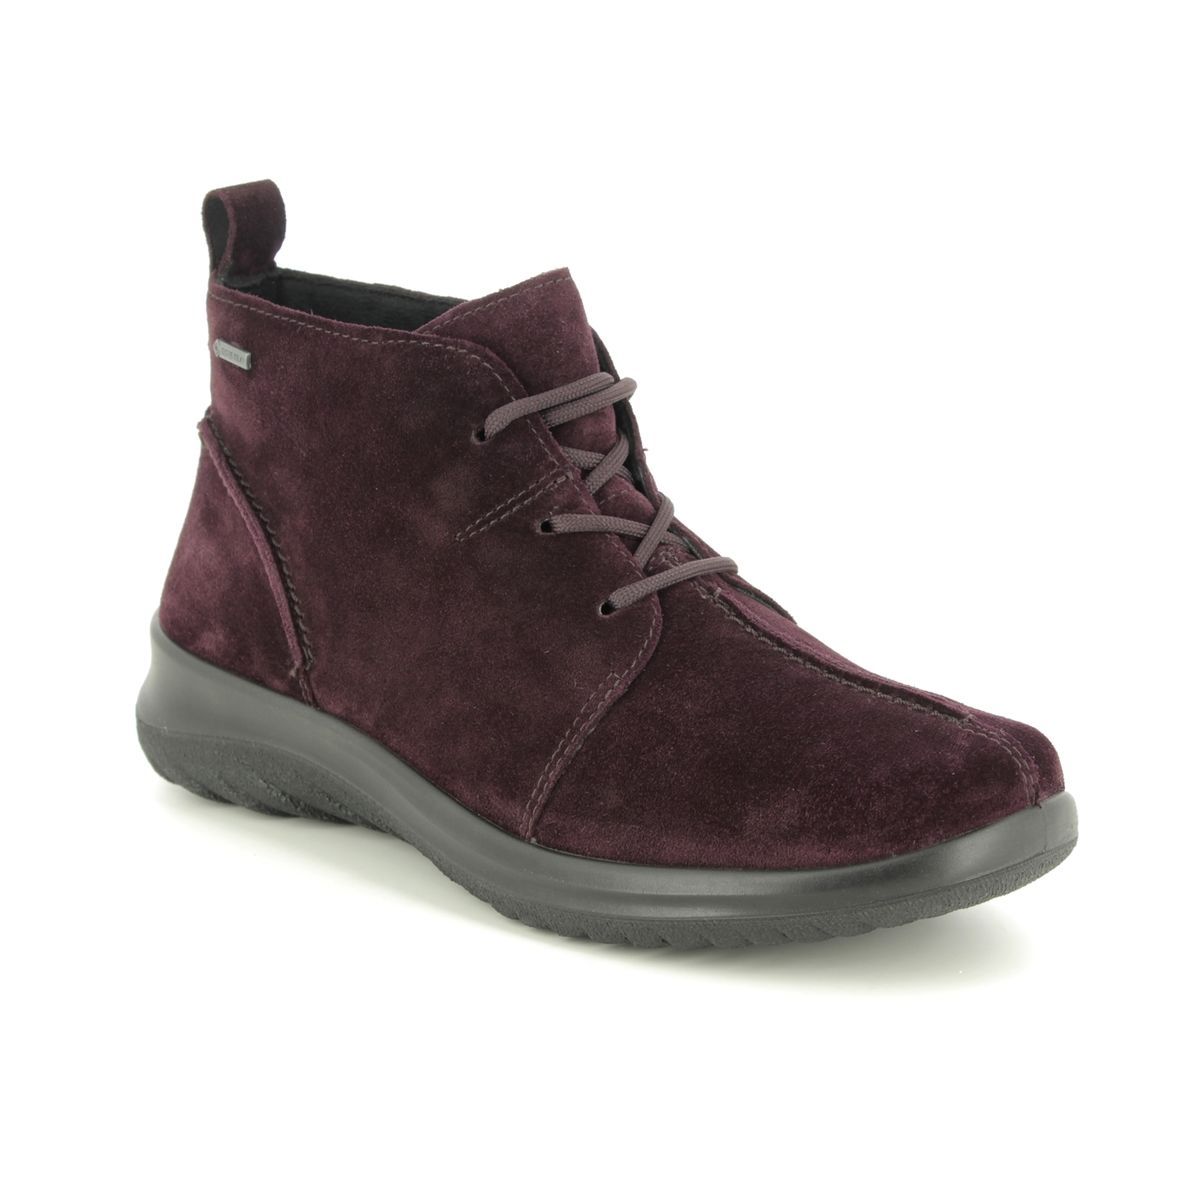 save up to 80% innovative design for whole family 09569/59 Soft Lace Gtx at Begg Shoes & Bags